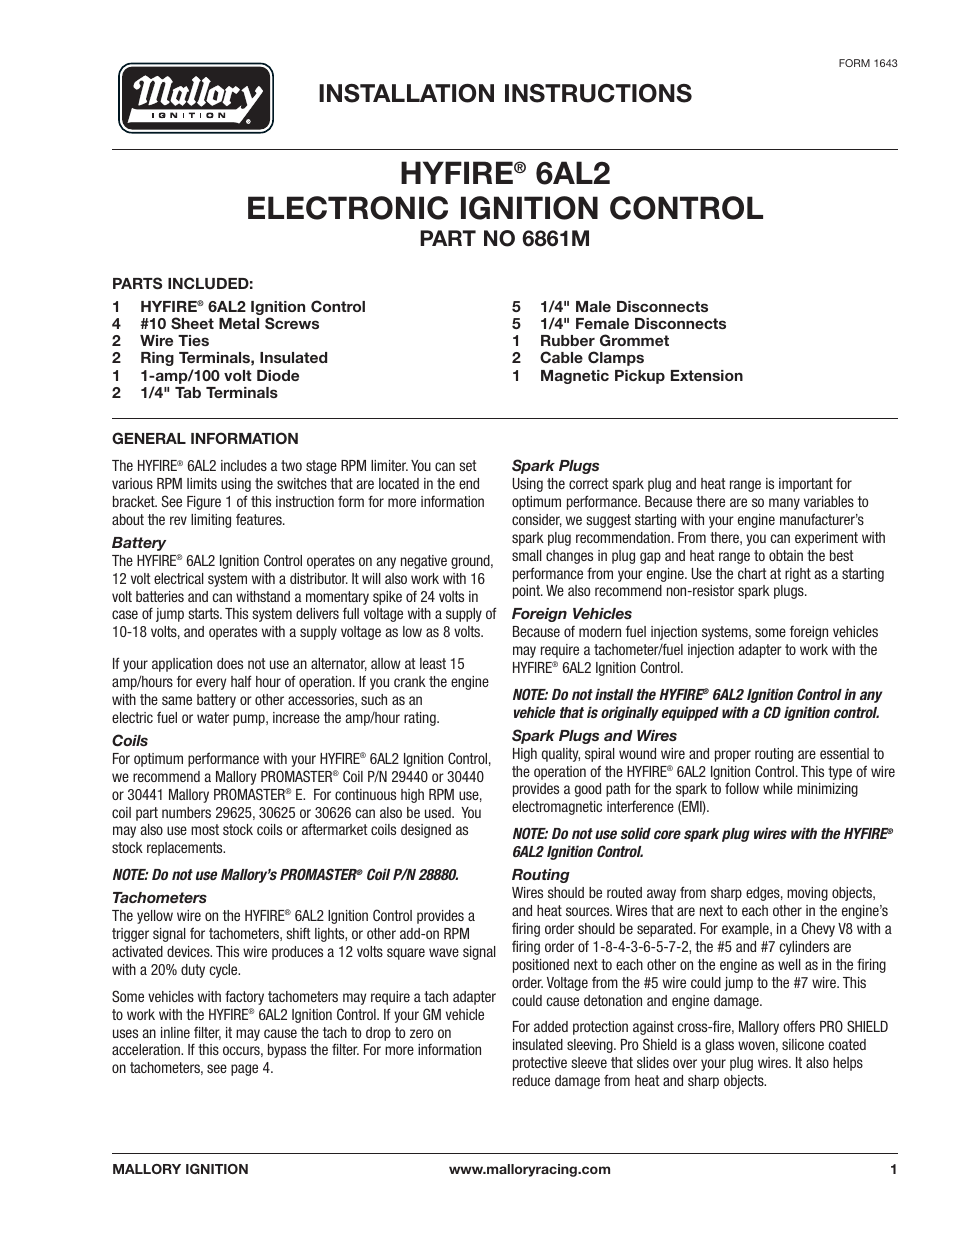 mallory ignition mallory hyfire 6al2 electronic ignition control 6861m page1 mallory ignition mallory hyfire 6al2 electronic ignition control mallory 6al wiring diagram at edmiracle.co